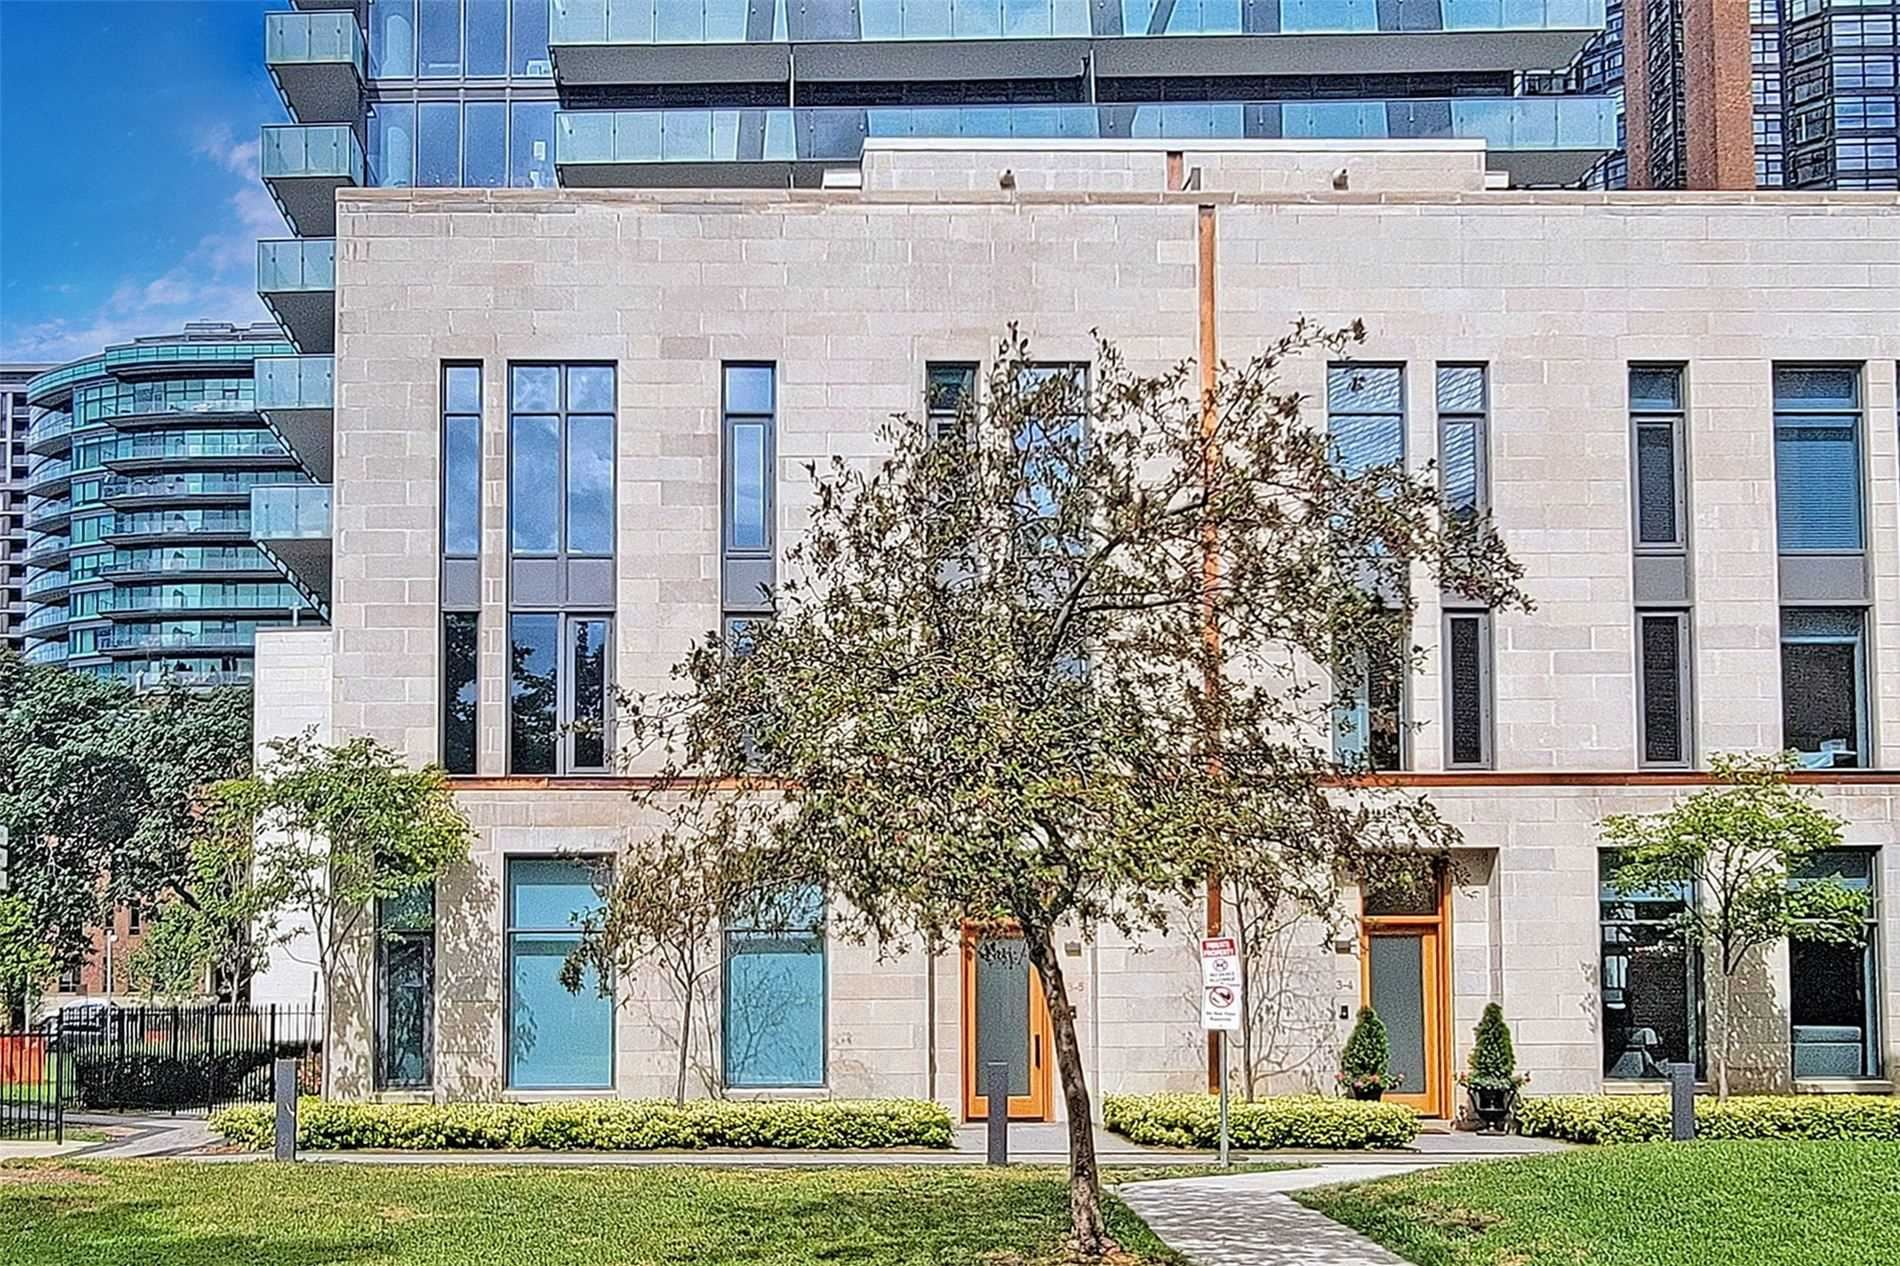 63 St Mary St #Th05, Toronto, ON M5S0A4 - MLS#: C5366265